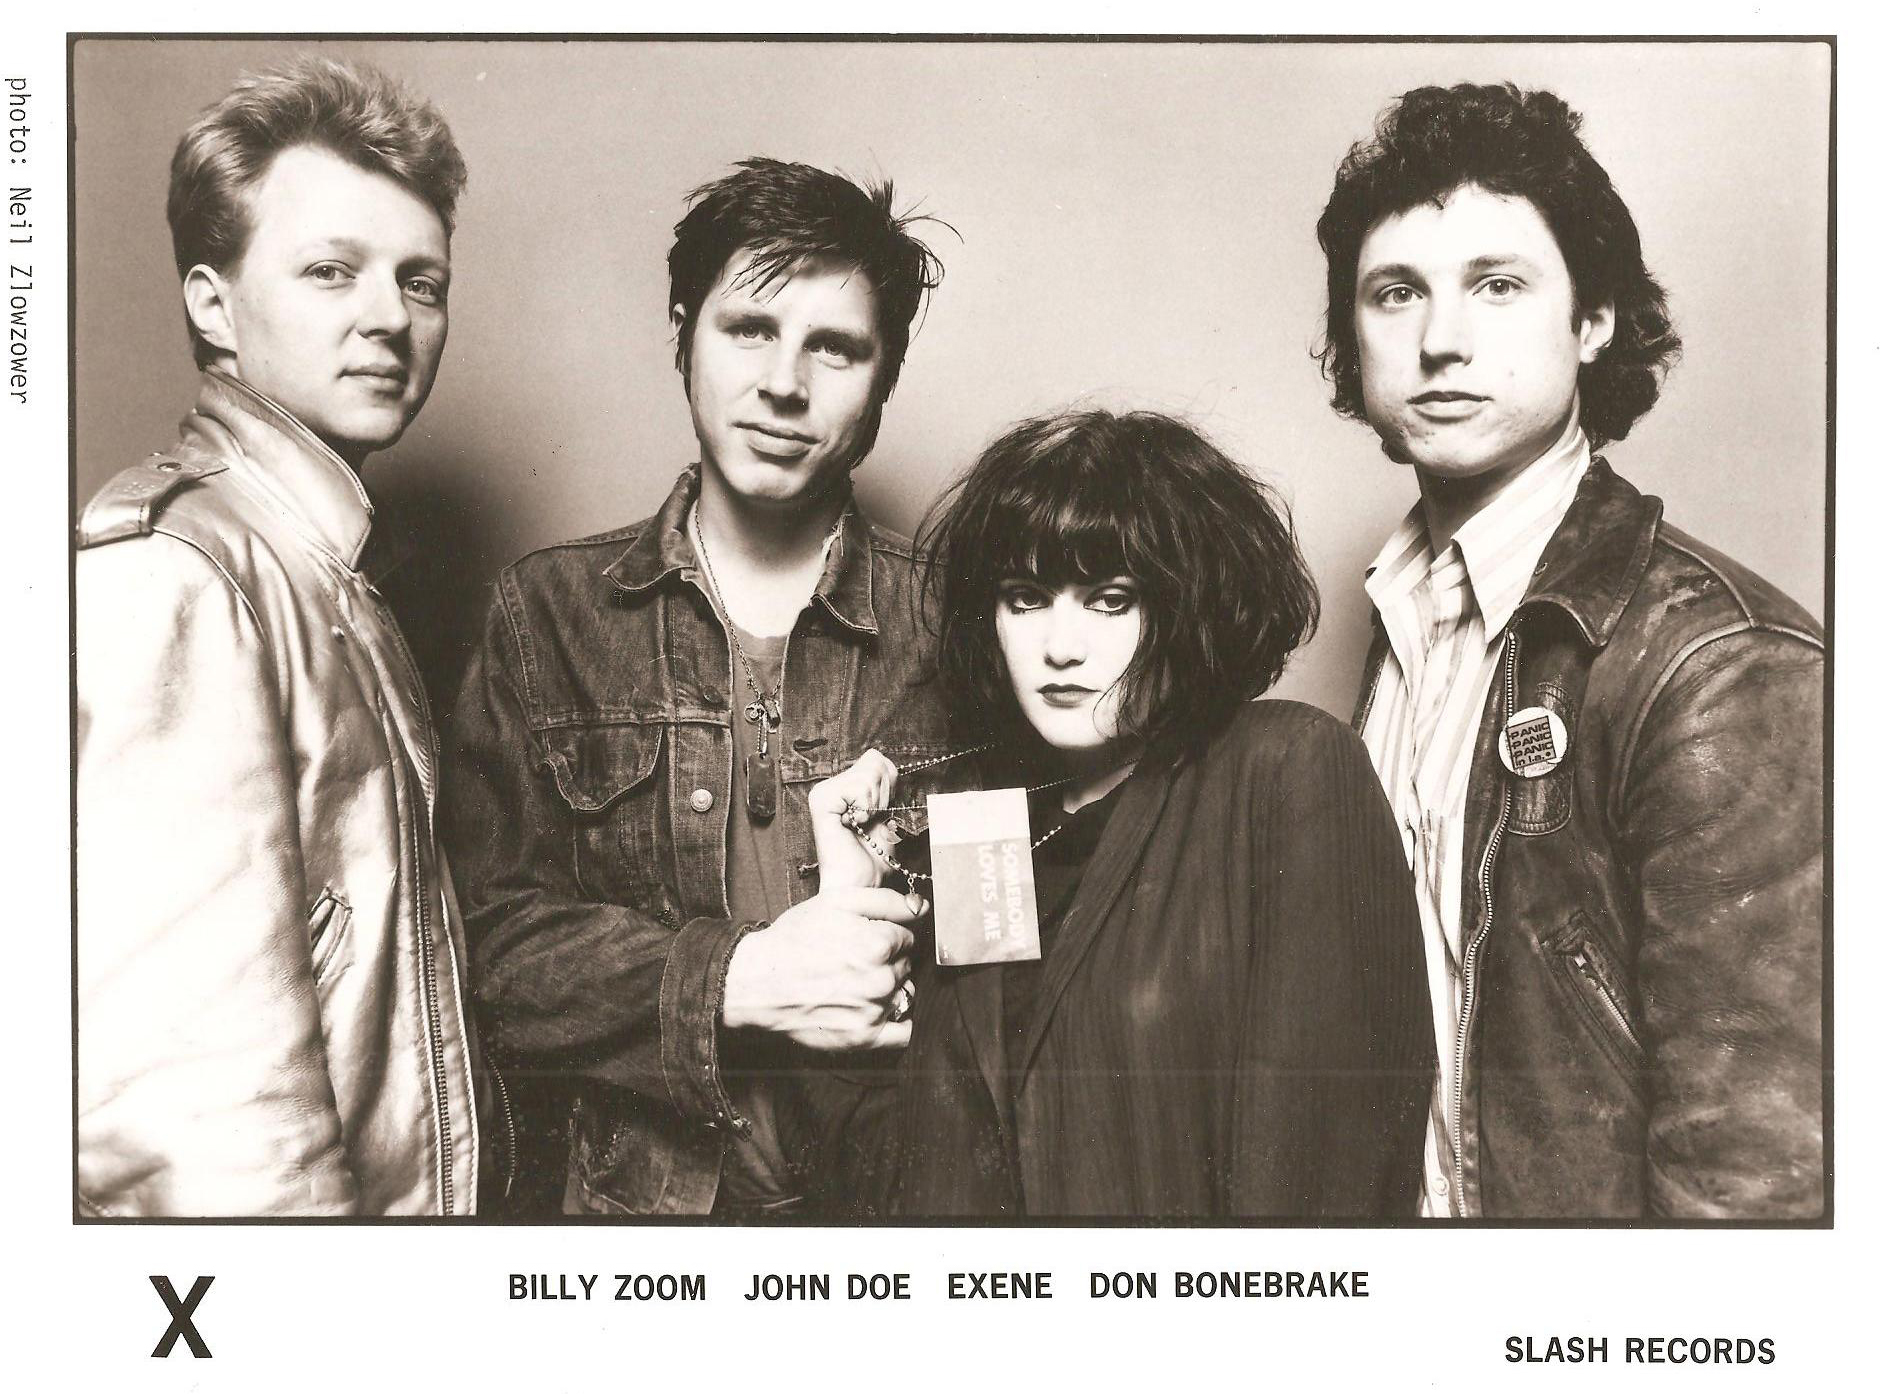 X Billy Zoom John Doe Exene DJ